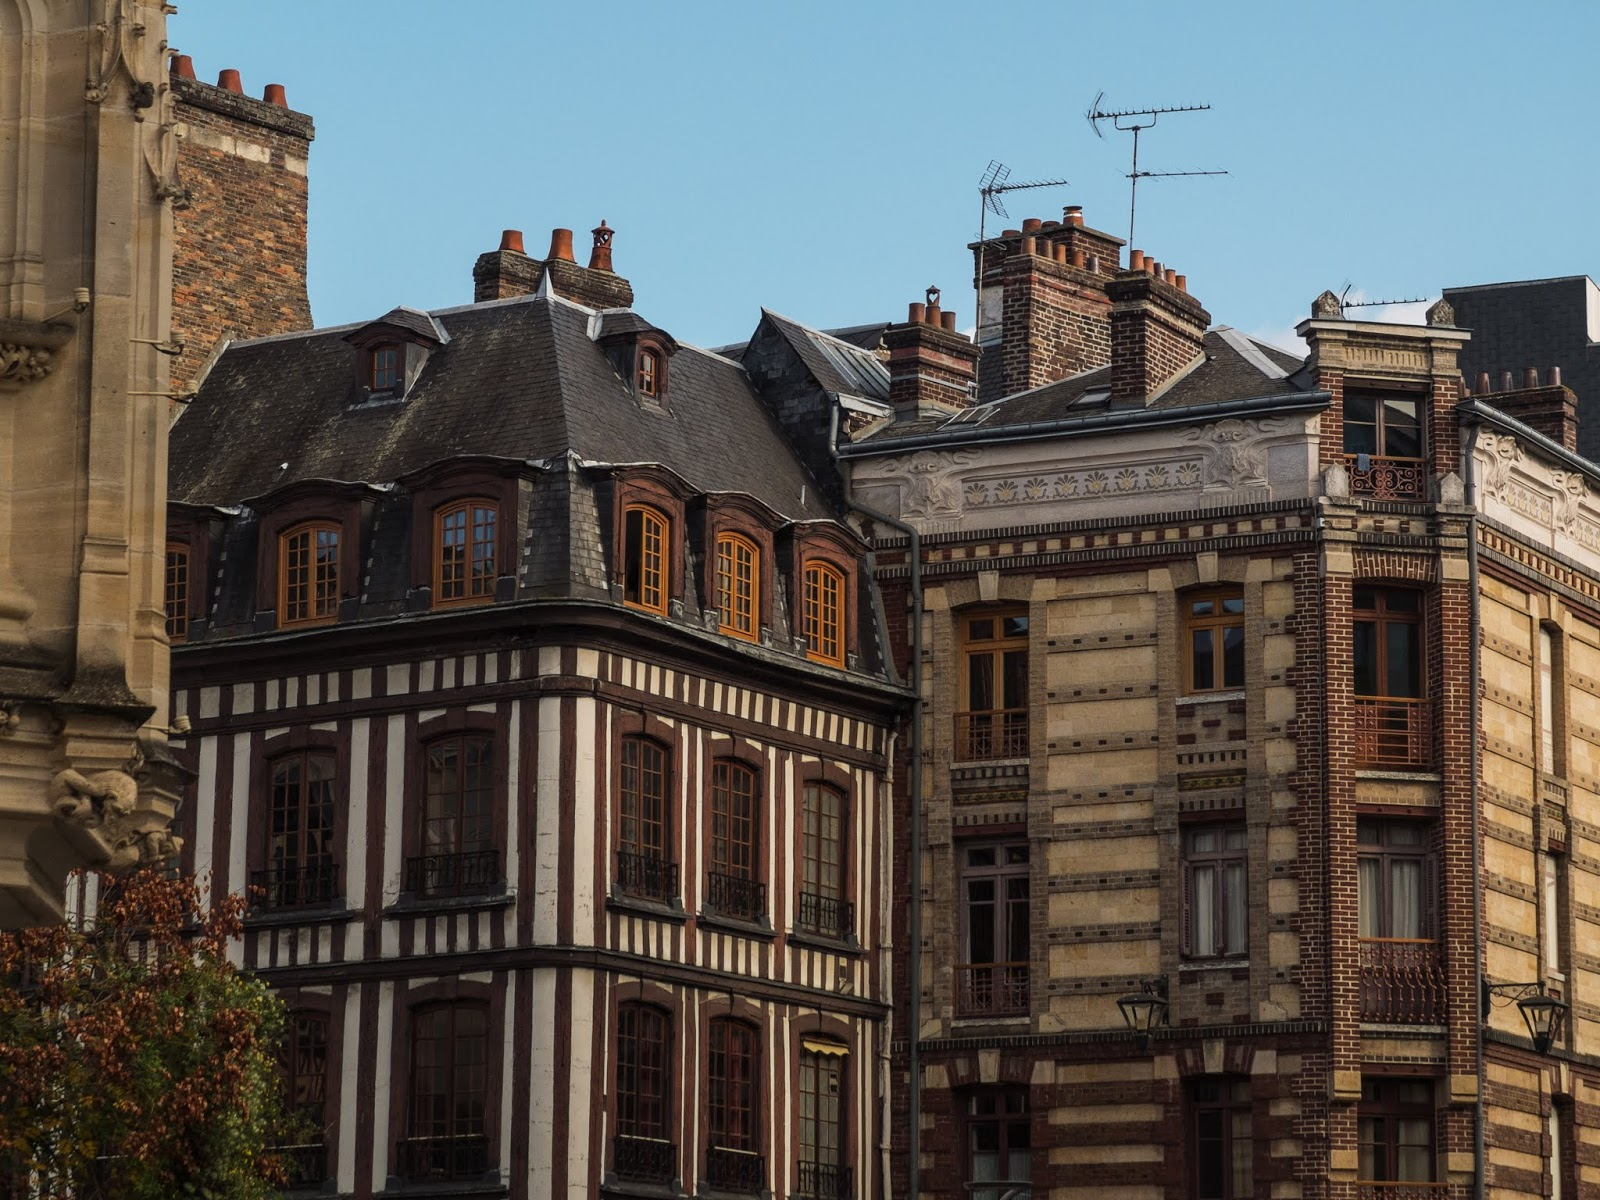 View of buildings on Place du Vieux Marche in Rouen, Normandy, France.